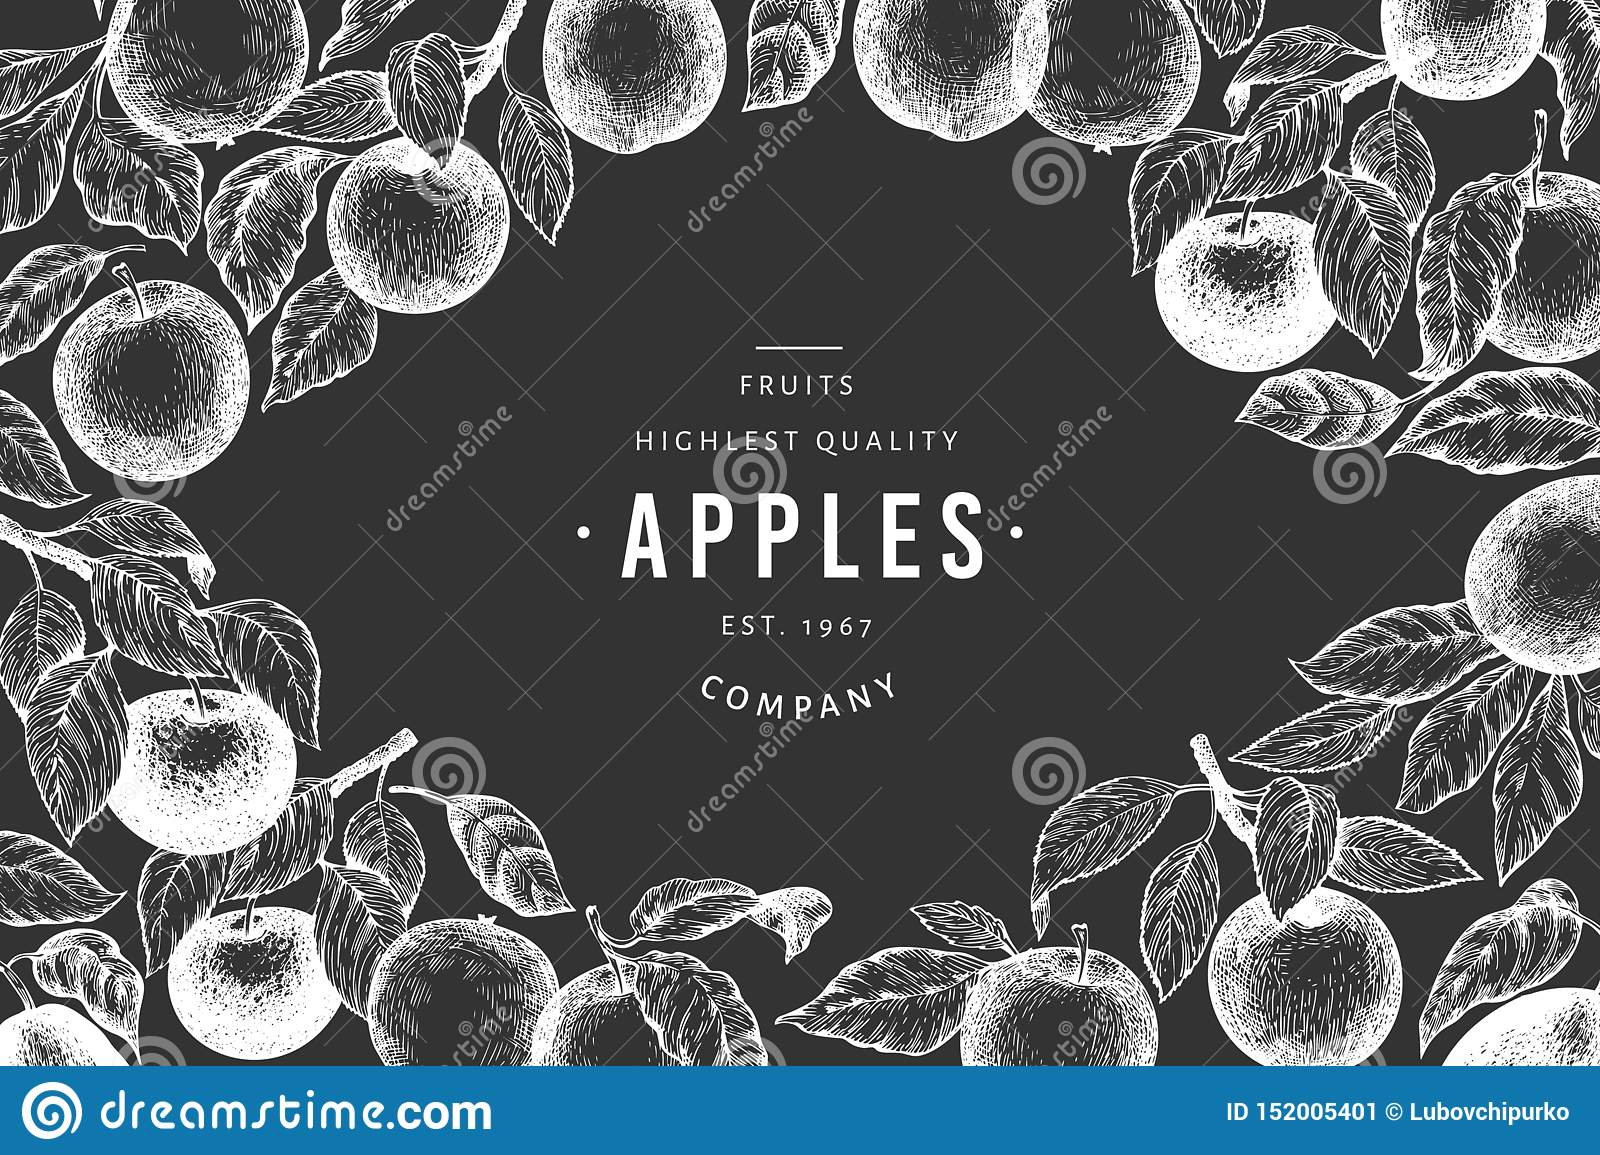 Apple branches design template. Hand drawn vector garden fruit illustration on chalk board. Engraved style fruit frame. Vintage